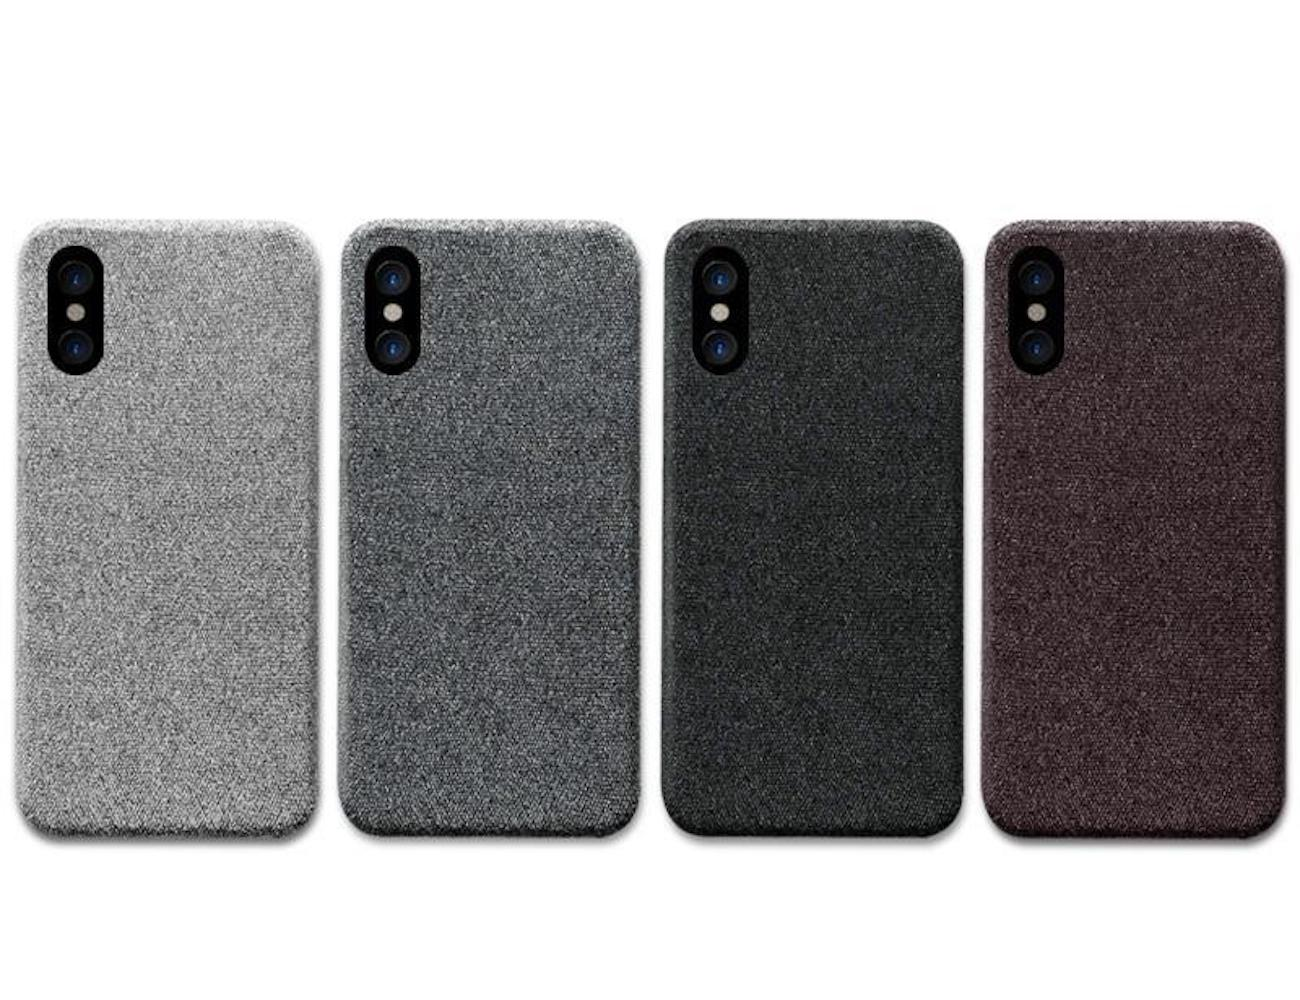 Kwik Charger Cloth Texture iPhone Case